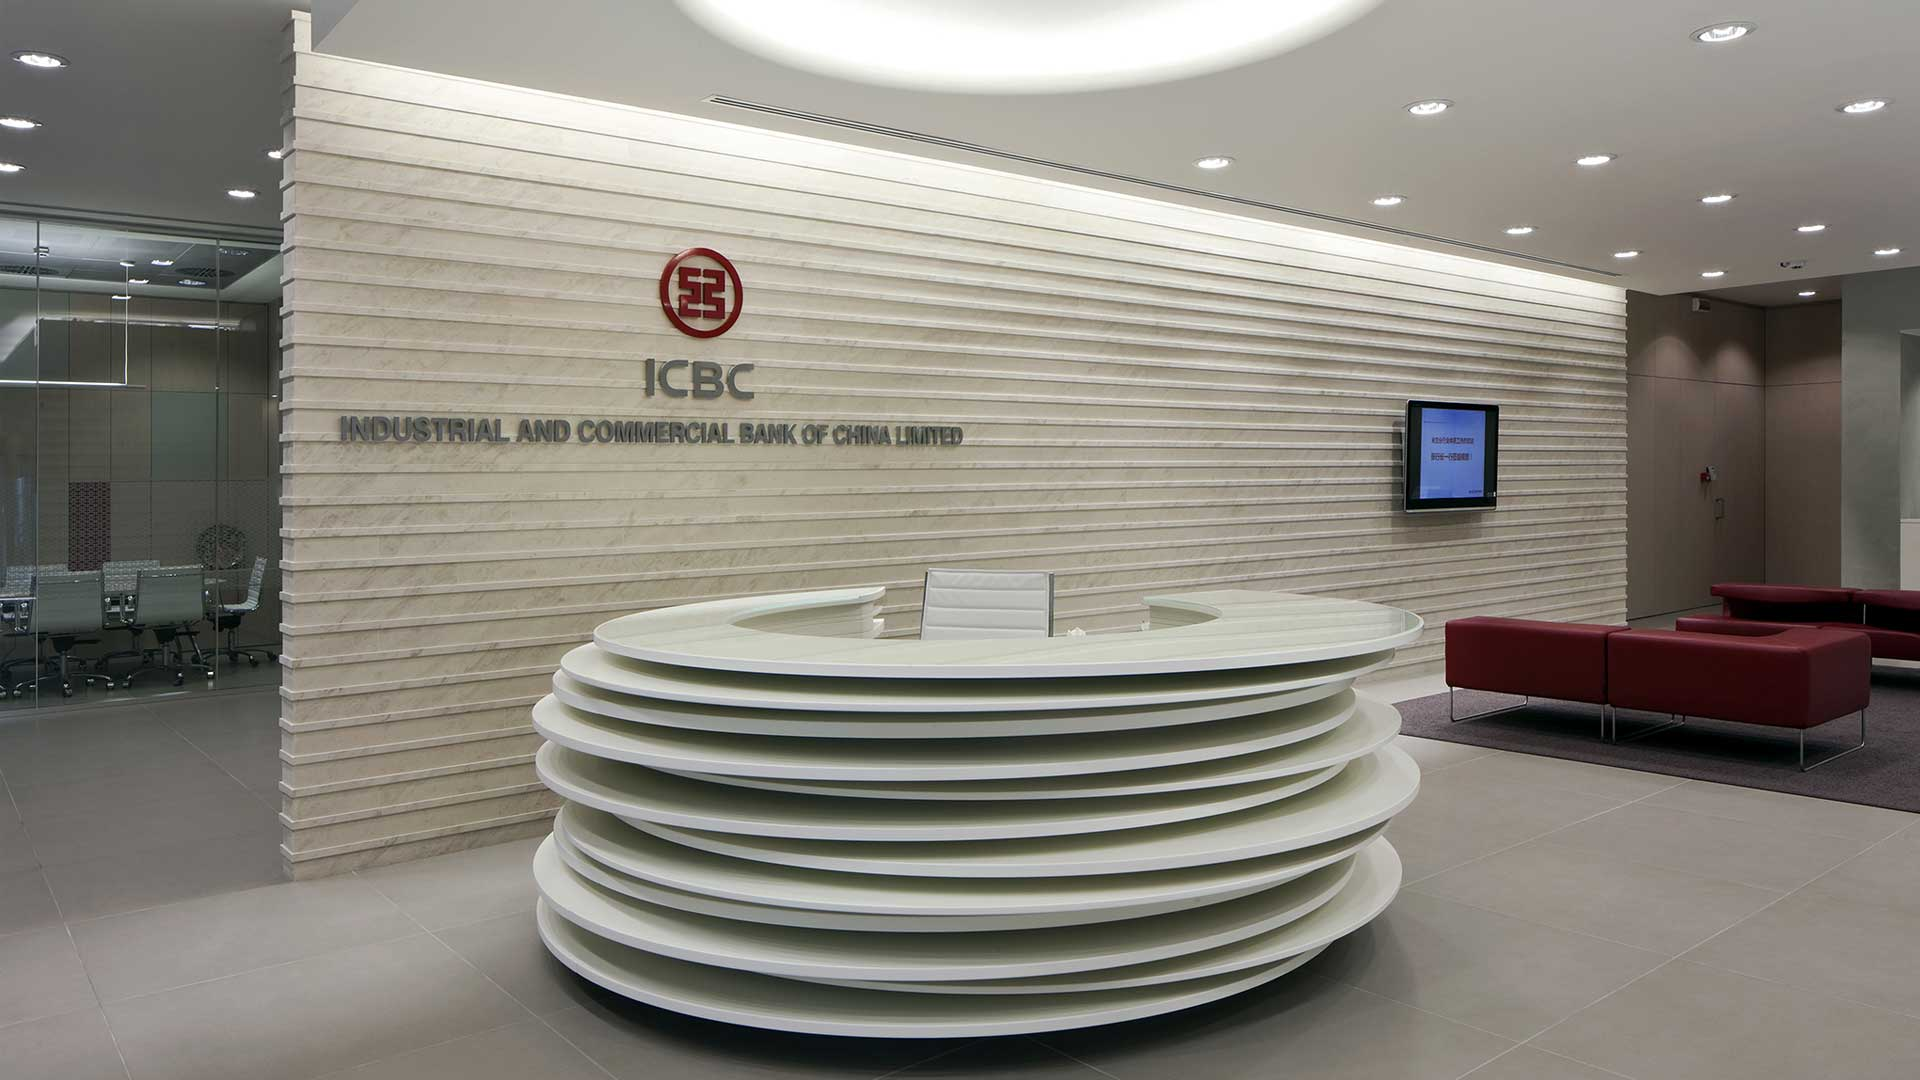 Reception-custom-made-ICBC_Milano-Level